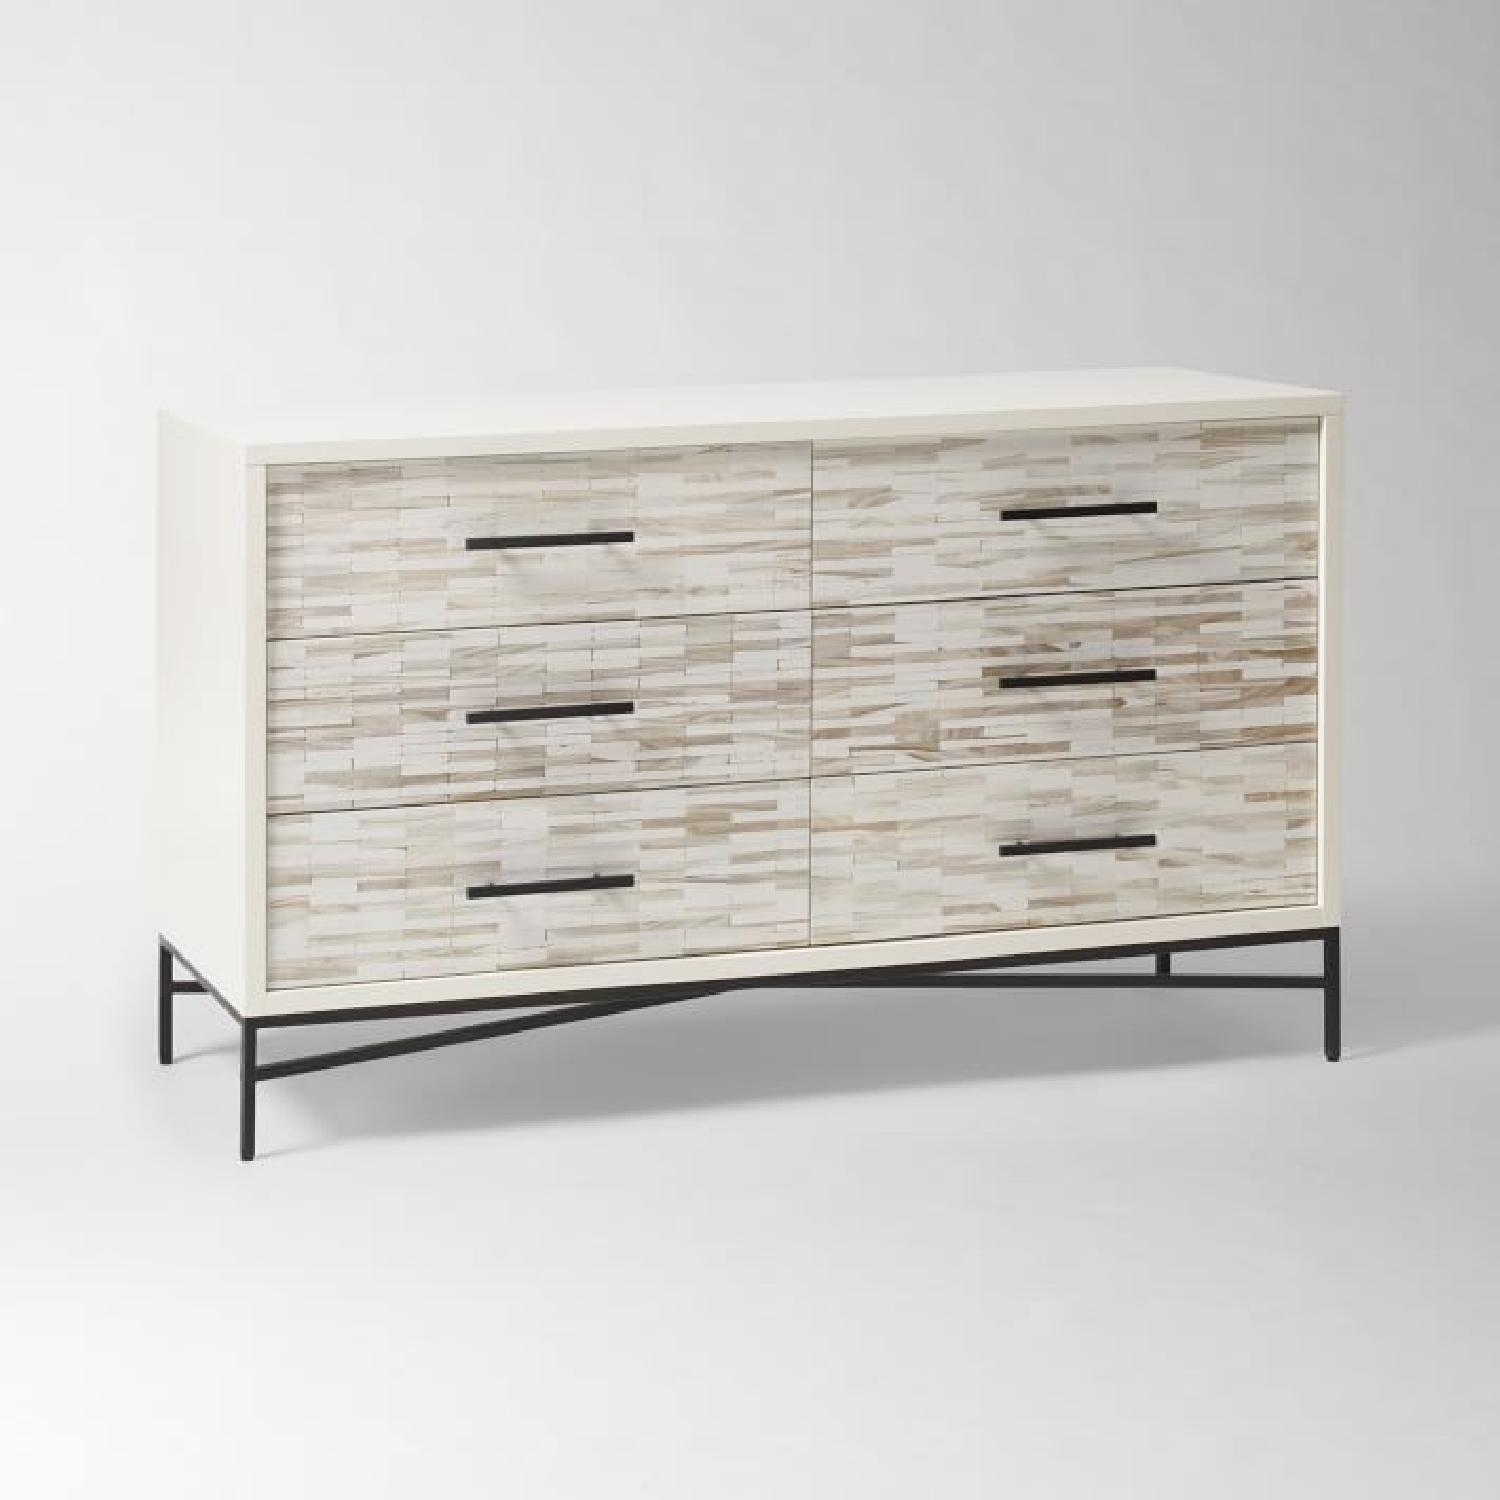 West Elm Wood Tiled 6-Drawer Dresser in Whitewash-0